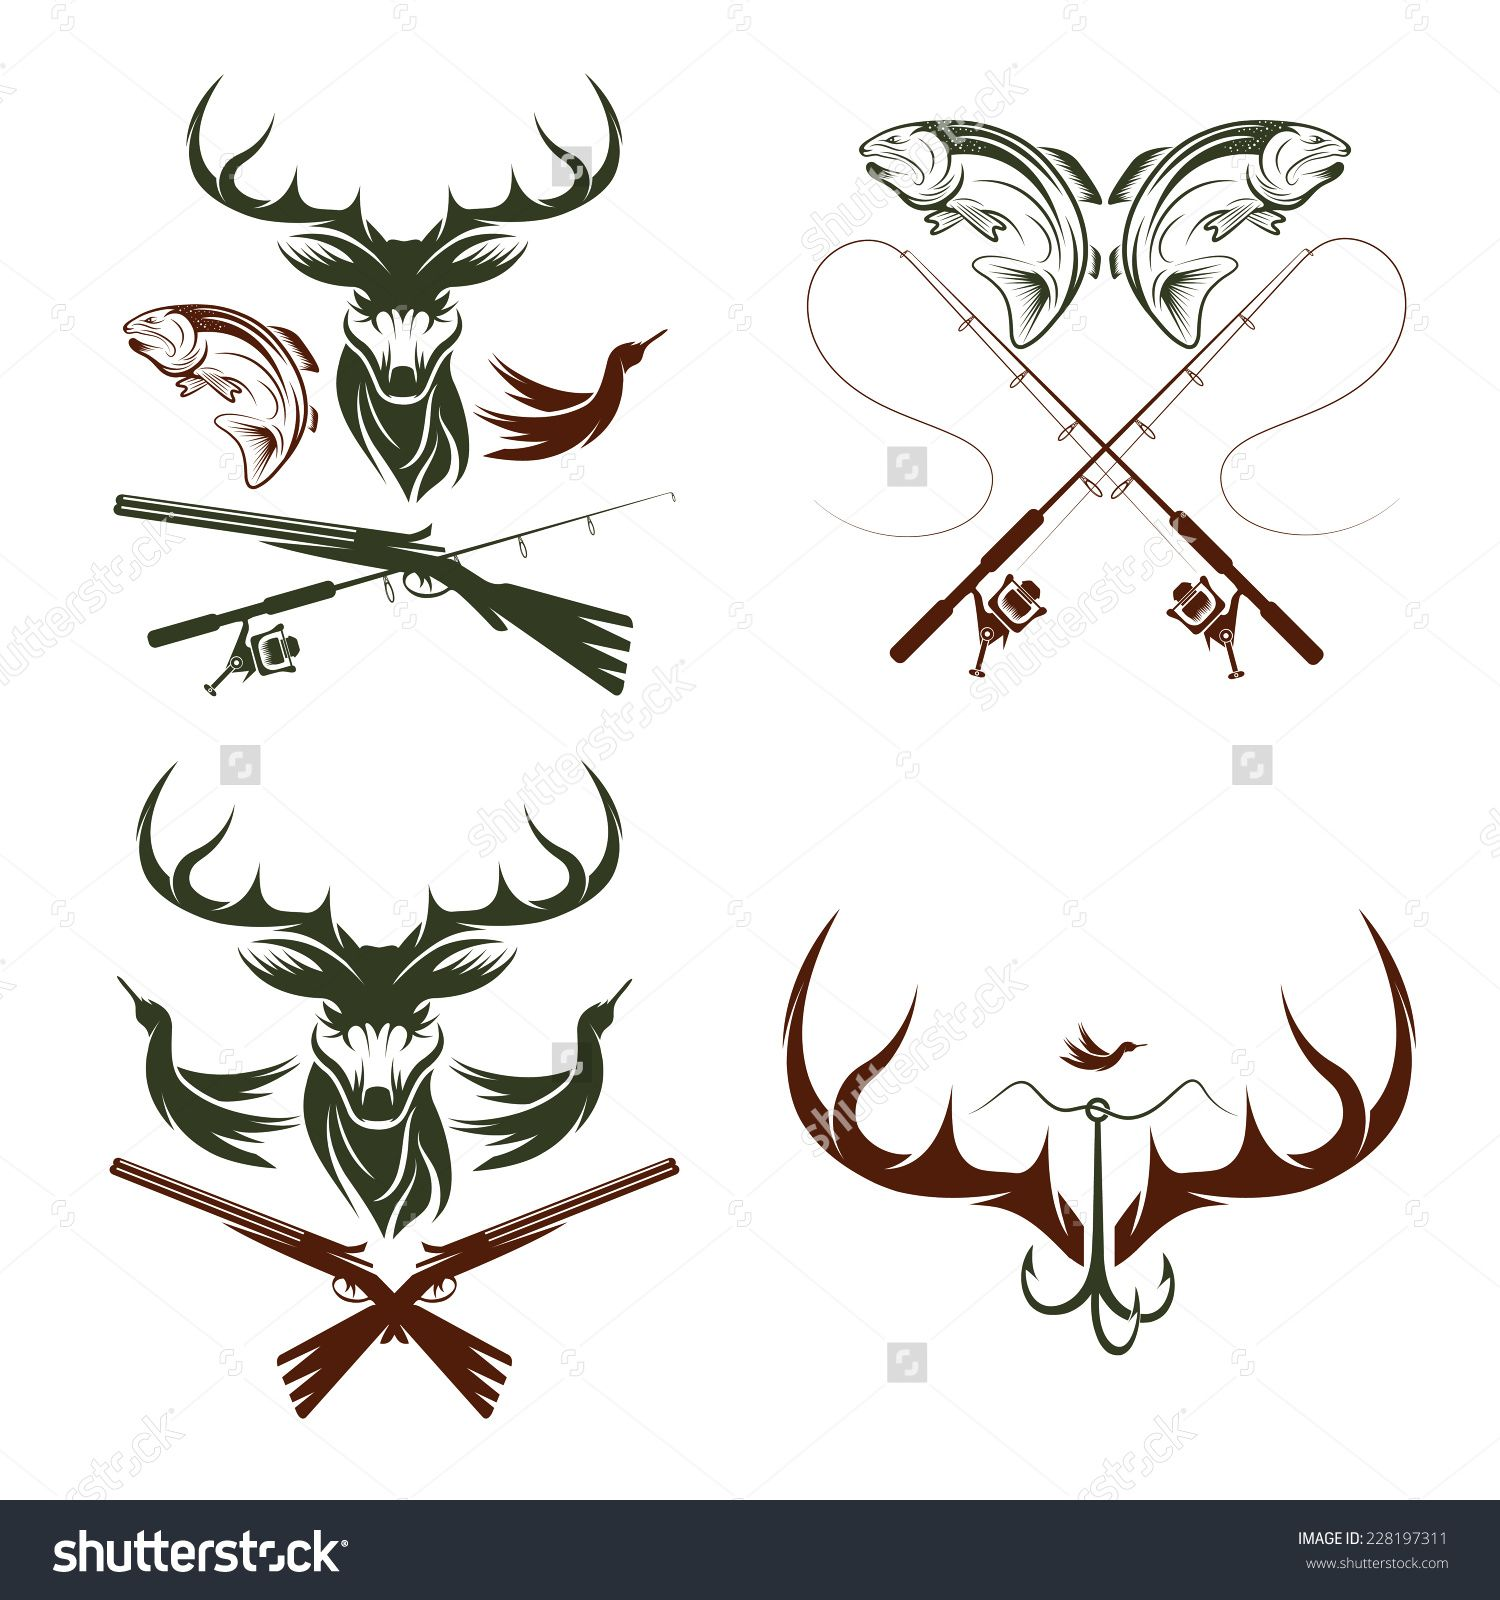 And fishing google search. Hunting clipart themed